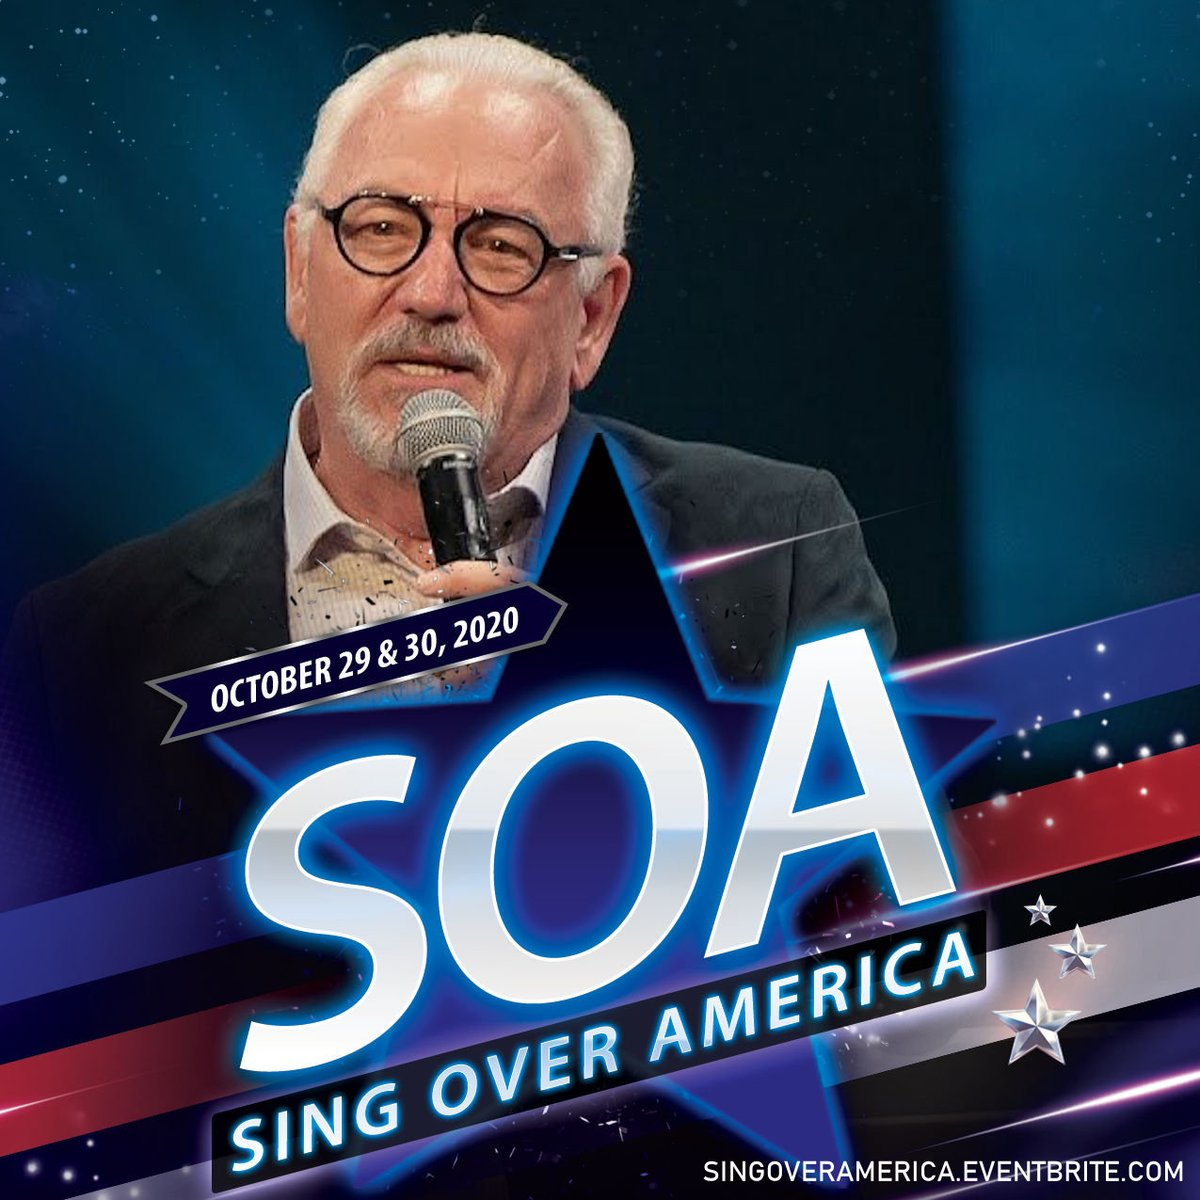 7 days left to buy your #tickets! Join Don Moen, Paul Wilbur, Gateway Worship, Brandon Roberson and Terry MacAlmon for the national #worship #event in #Dallas, TX: Sing Over #America! https://t.co/ZduMJzscuB https://t.co/EFBPoIBiuD